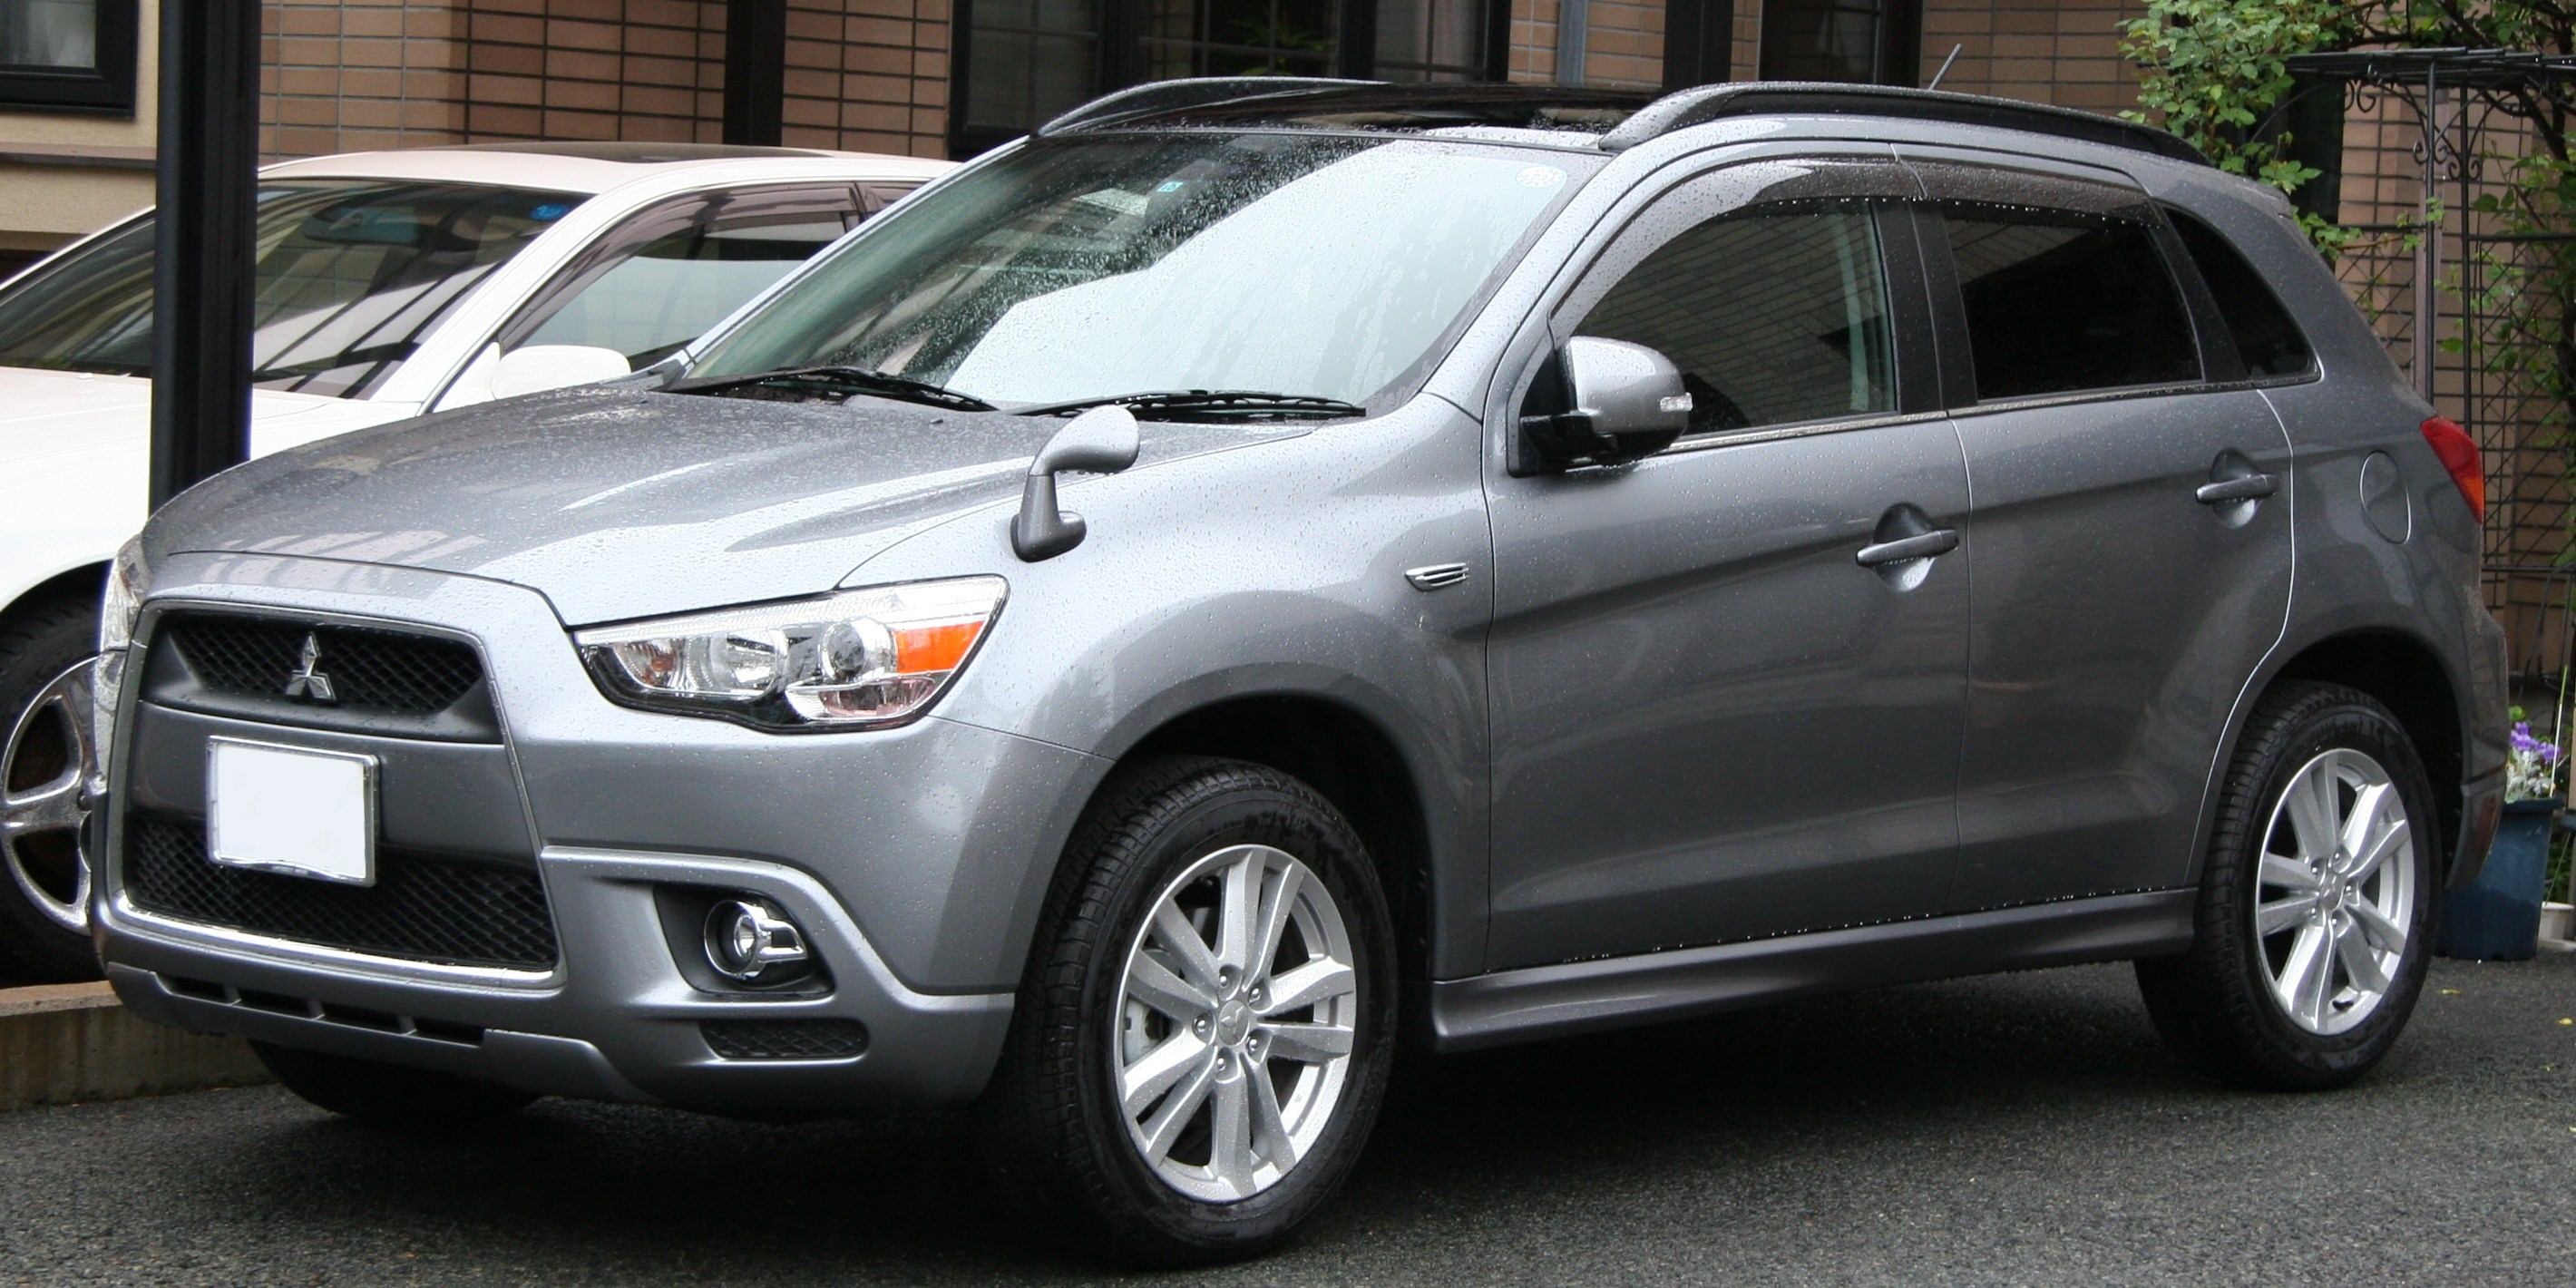 Mitsubishi Rvr Pictures Information And Specs Wiring Diagram Photo Gallery